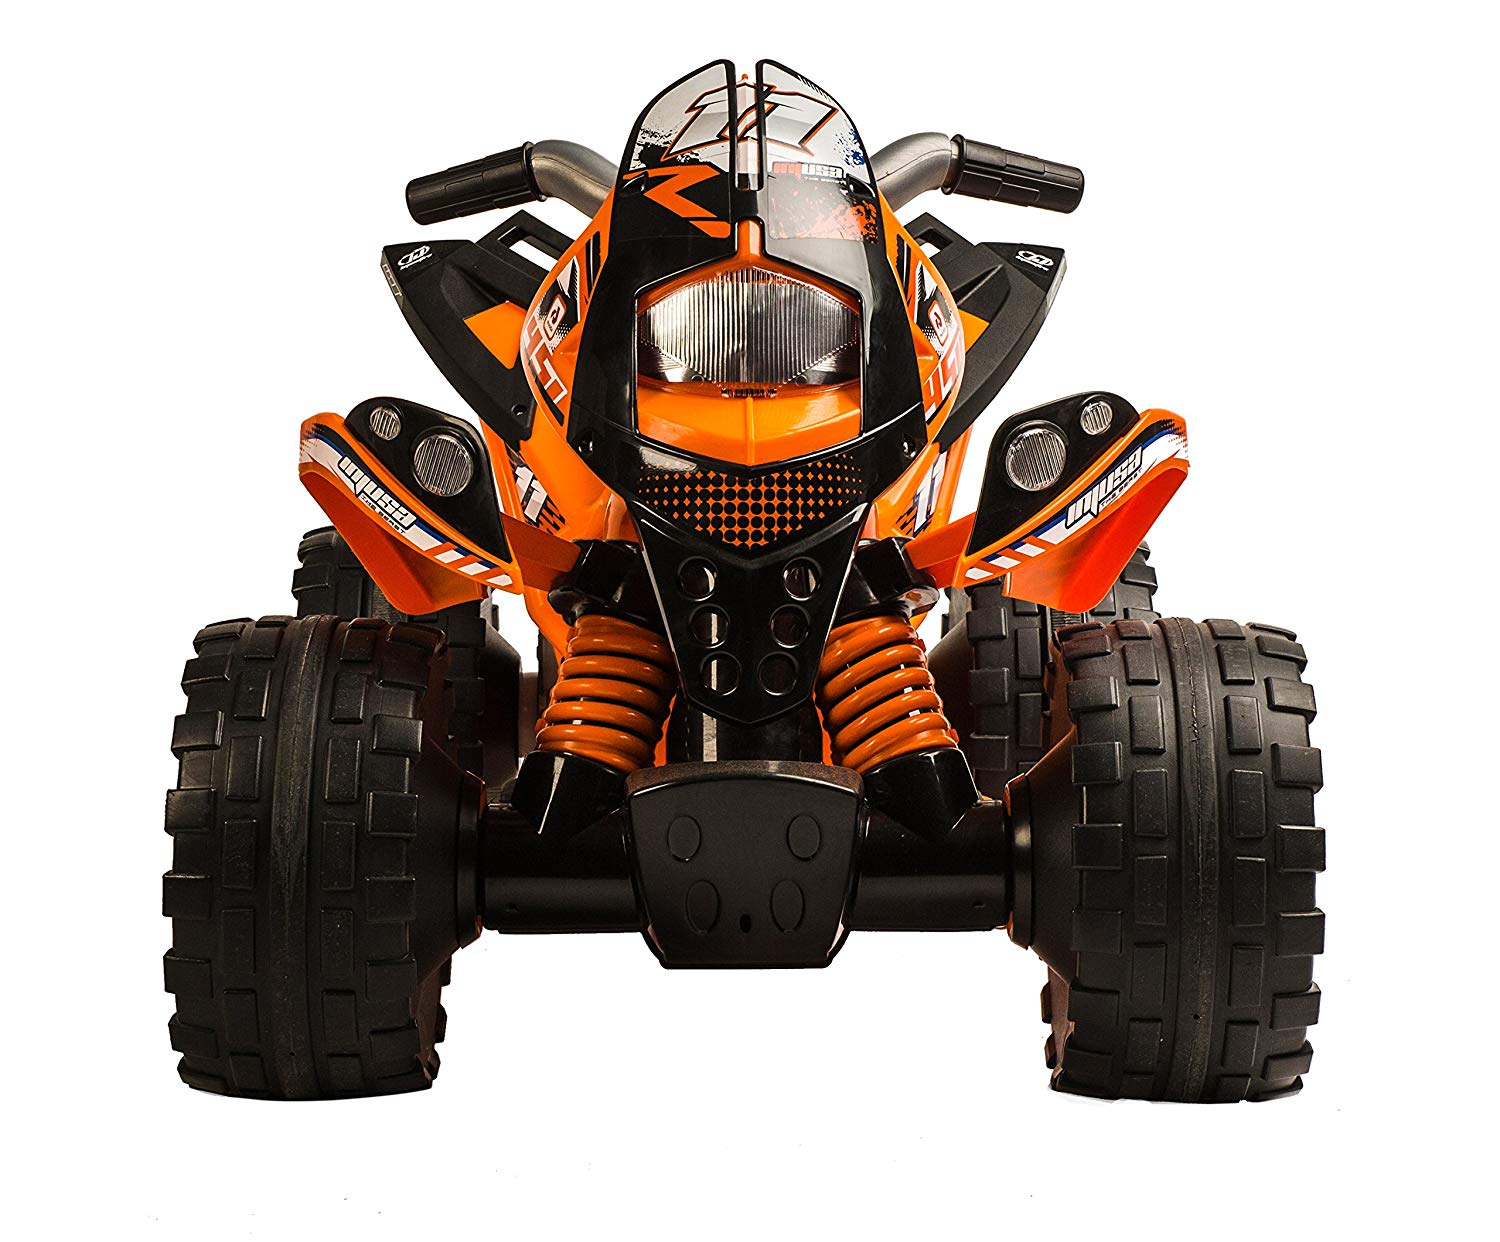 CUATRIMOTO THE BEAST 6V 760 - N38819